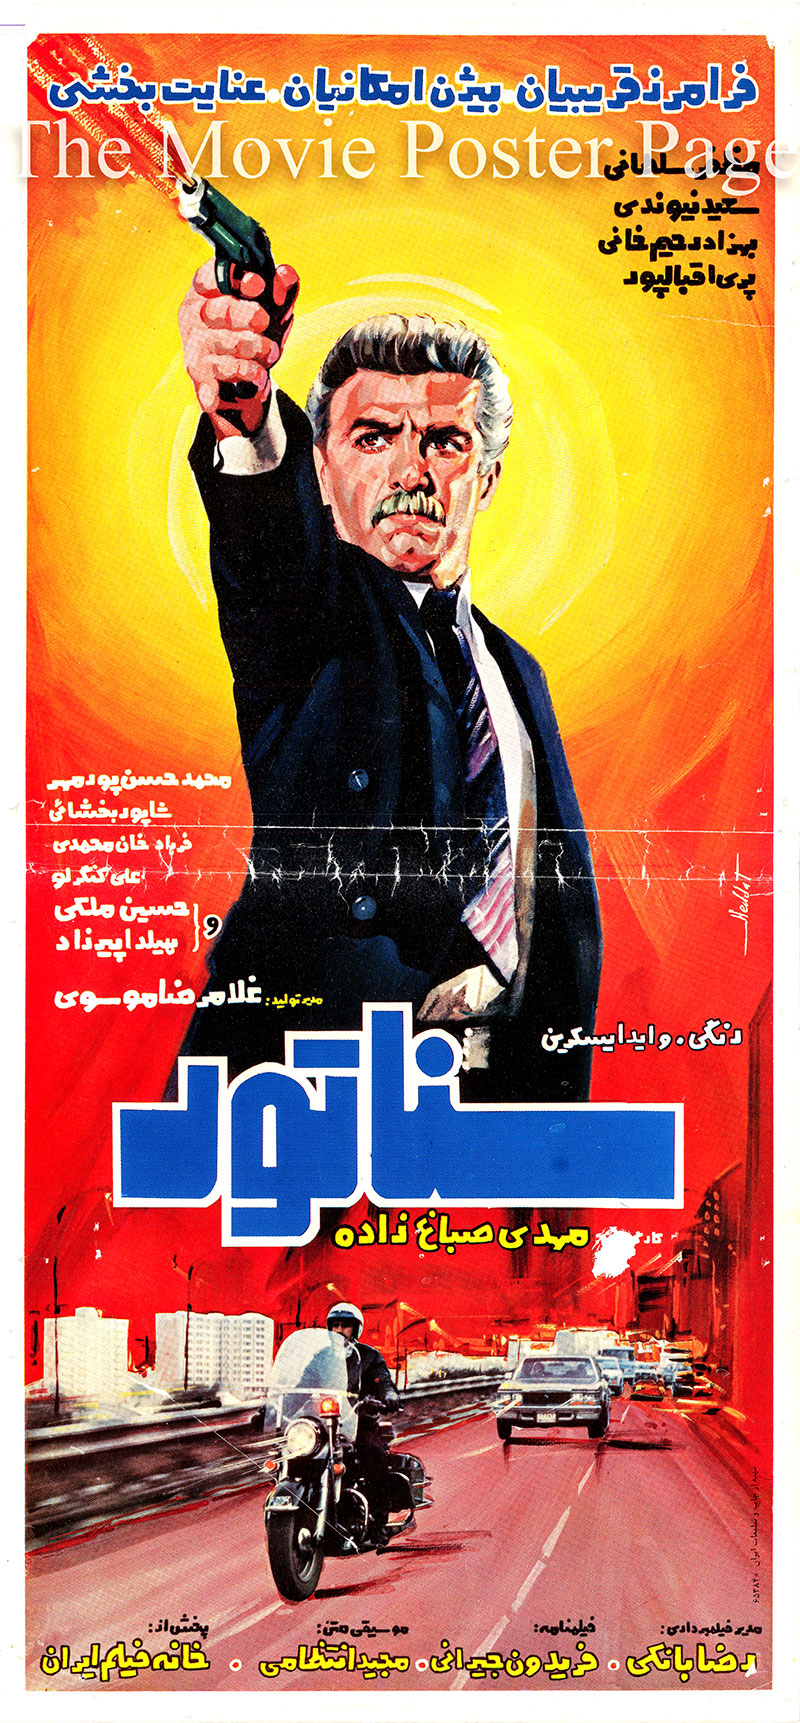 Pictured is an Iranian promotional poster for the 1983 Mehdi Sabbaghzadeh film Senator starring Faramarz Gharibian as Warrant Officer Haqgu.